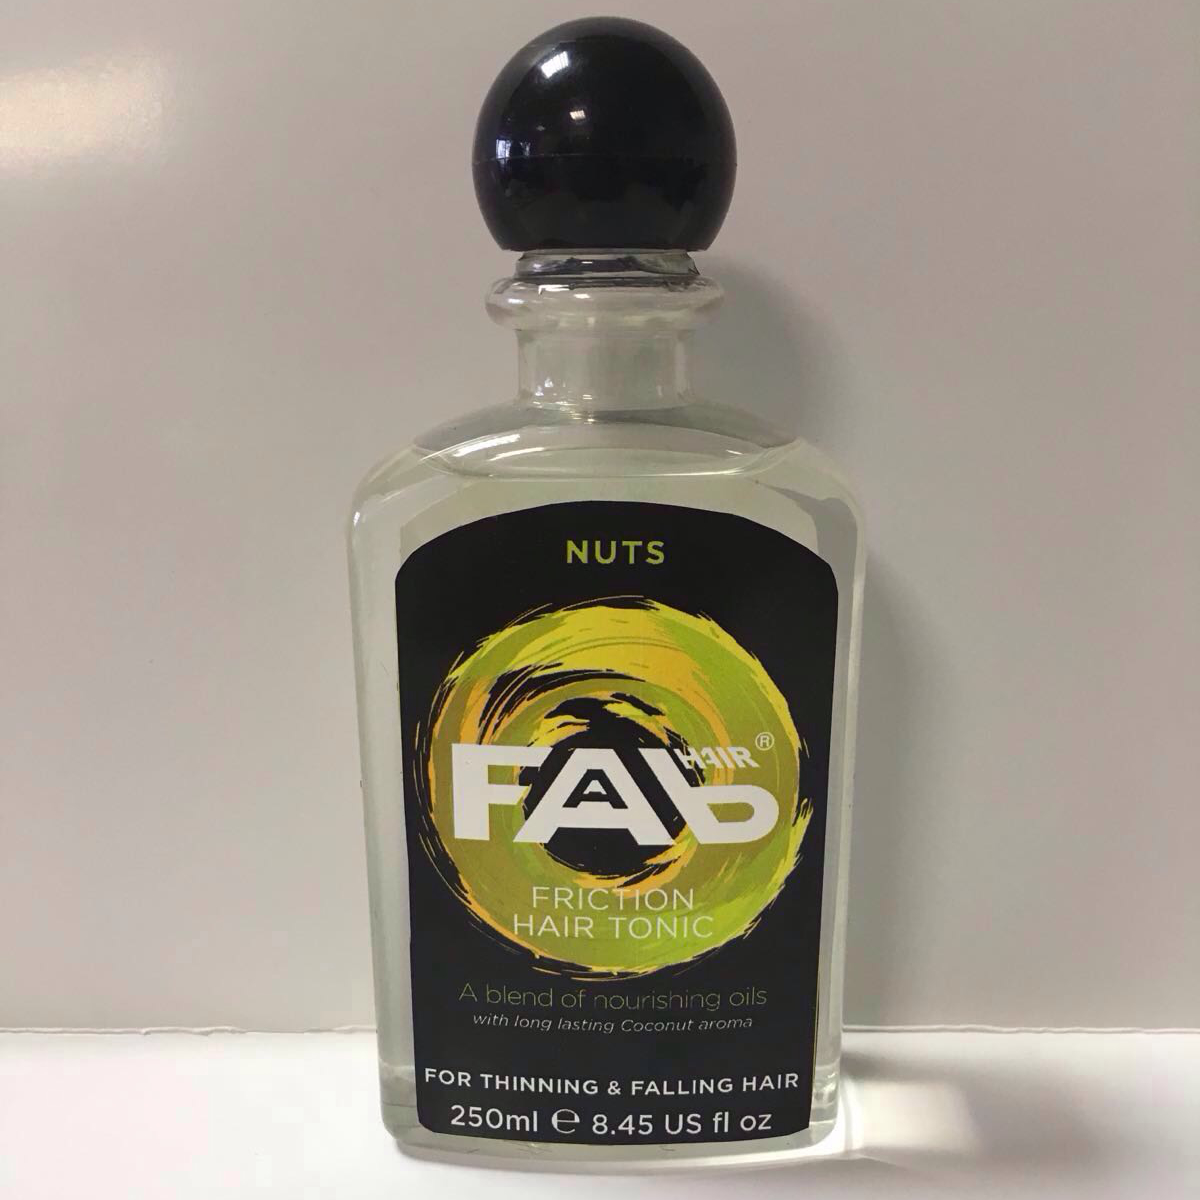 FAB Hair Nuts Friction Hair Tonic